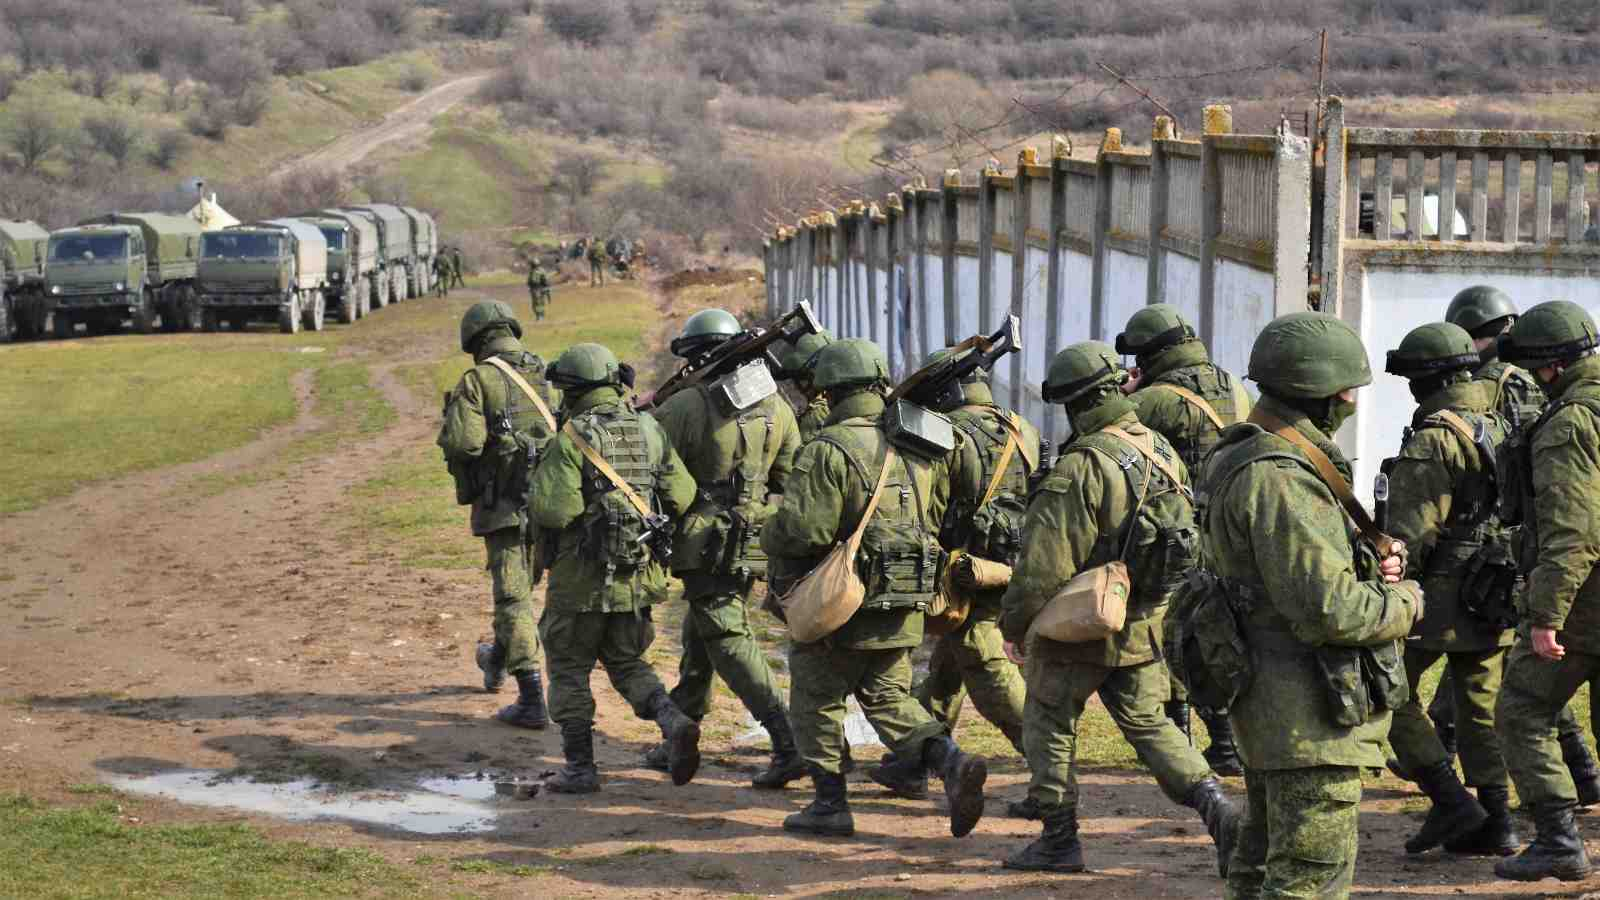 Photo: Little Green Men at Military base at Perevalne during the 2014 Crimean crisis. Credit: Wikimedia Commons